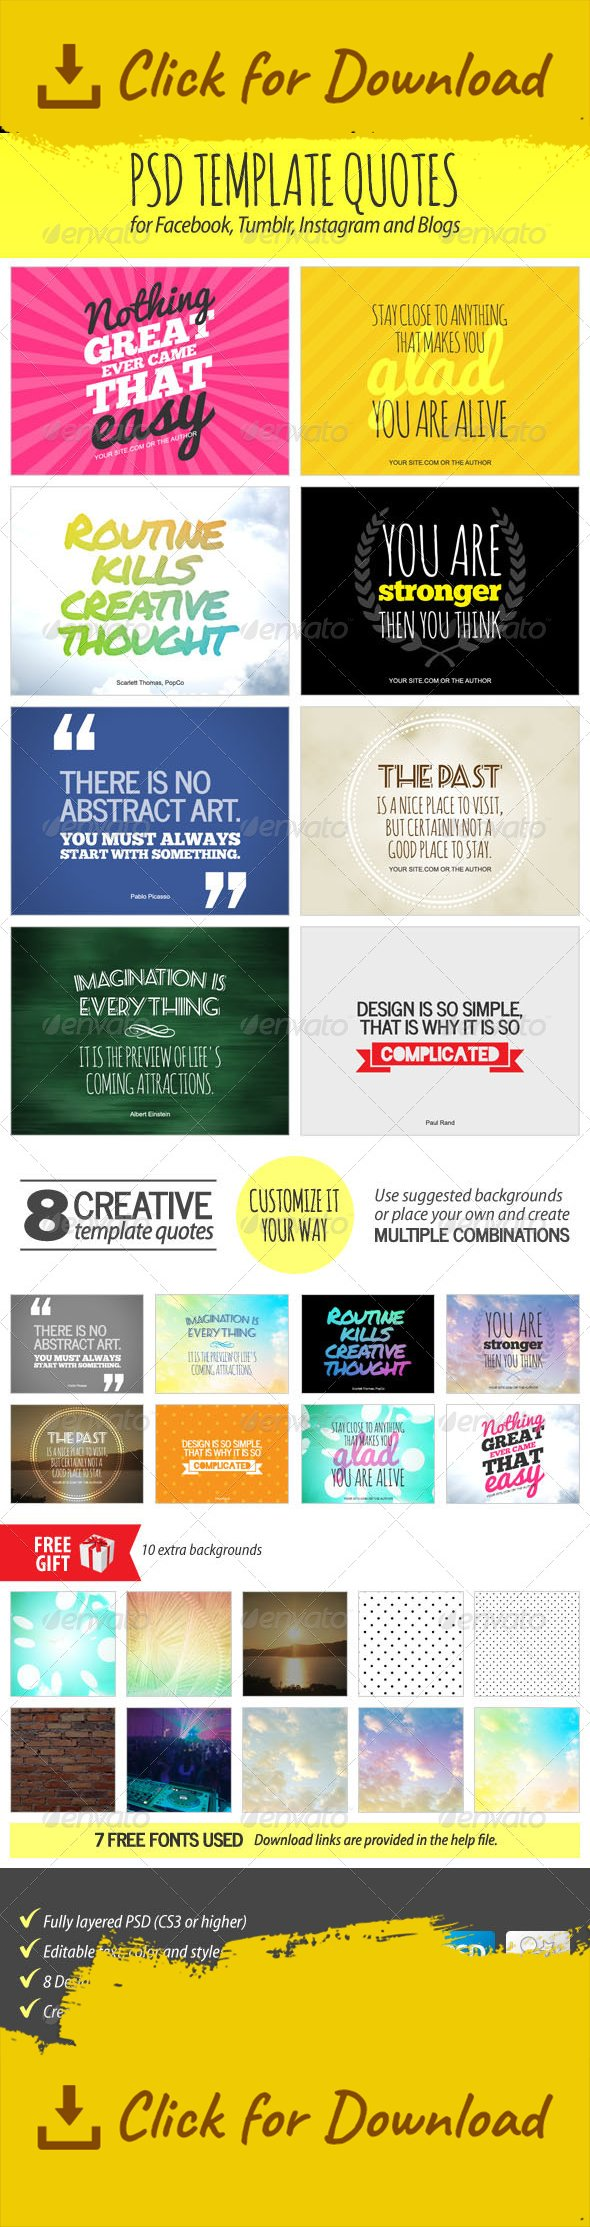 PSD Template Quotes | Pinterest | Edit text, Backgrounds free and Adobe